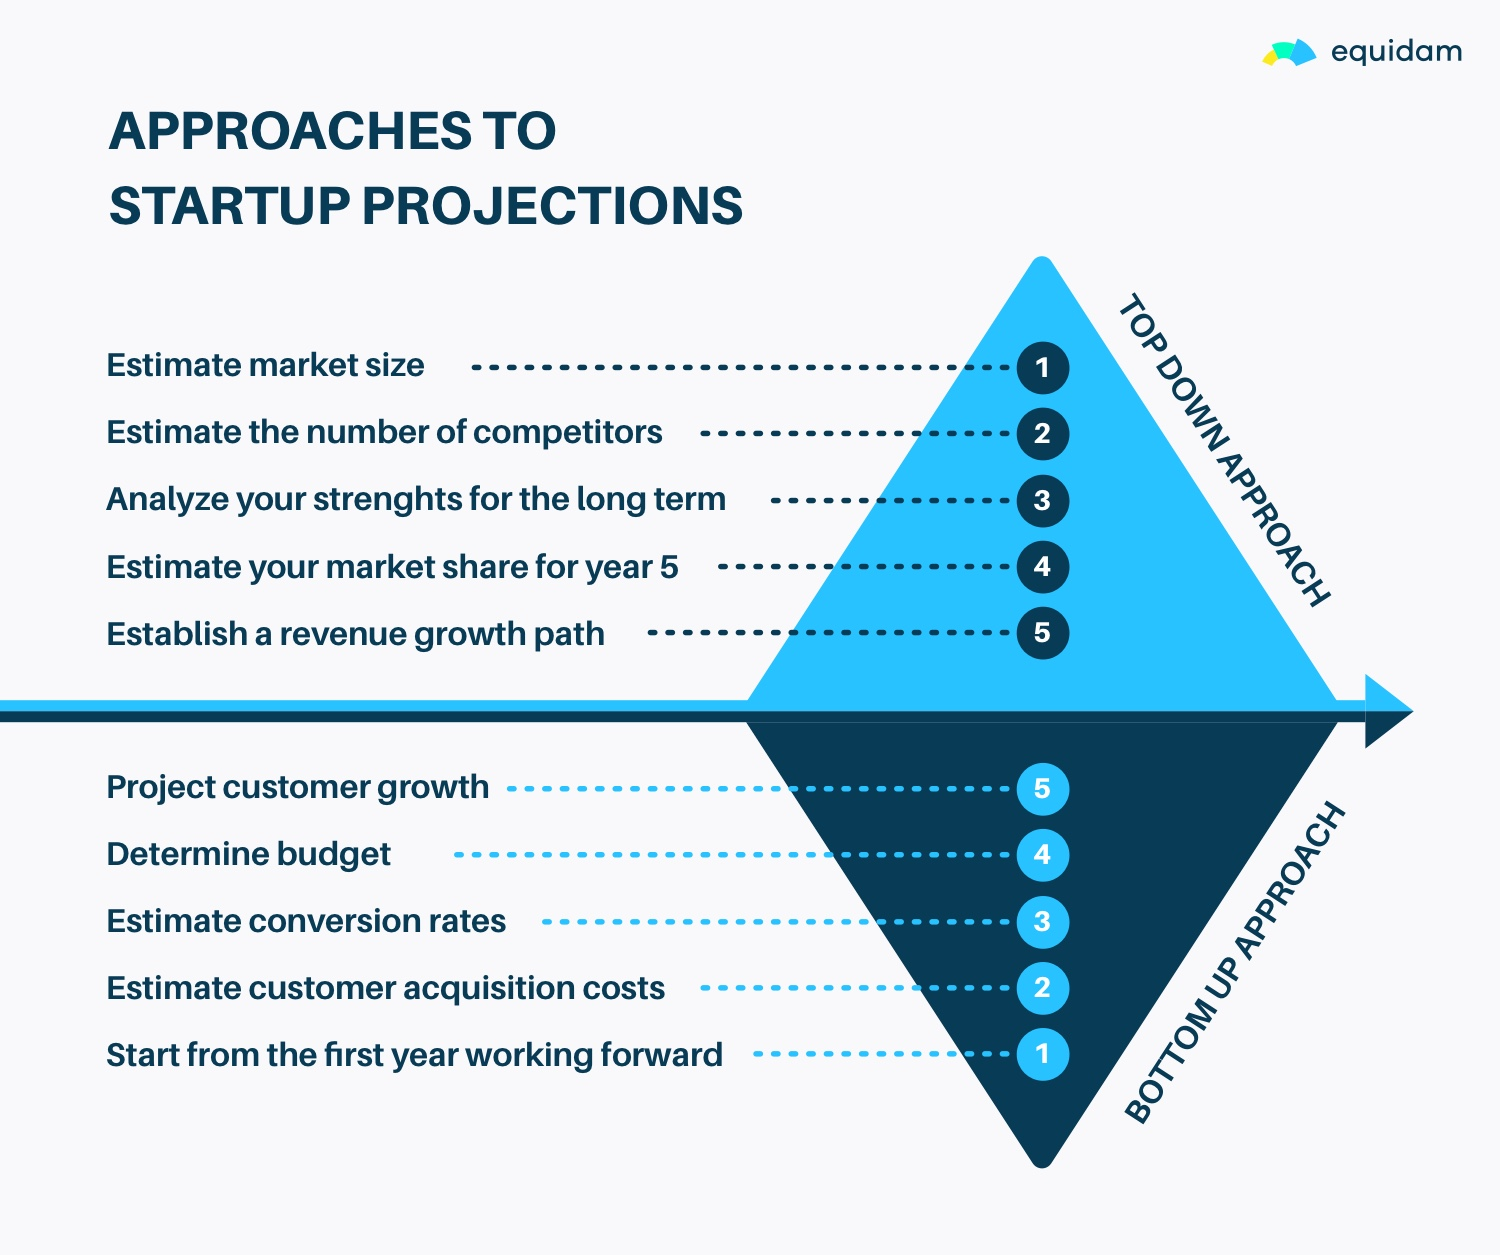 Startup Projections - How to start | Equidam